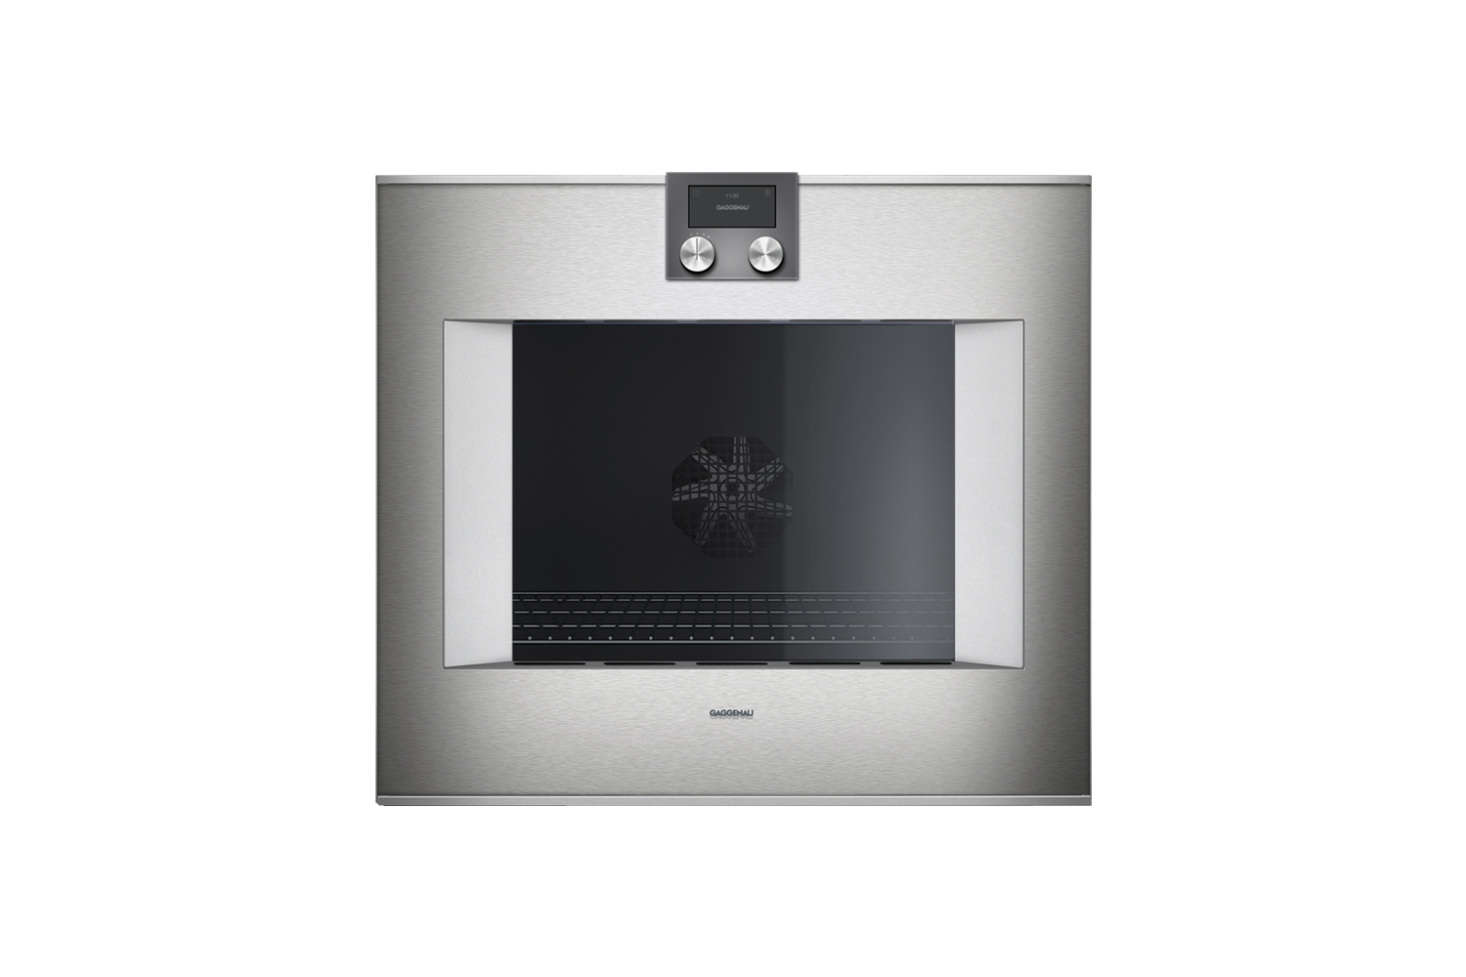 Two Gaggenau 400 Series Glass Door Wall Ovens are inset into kitchen cabinets. Contact Leiberts for price information.